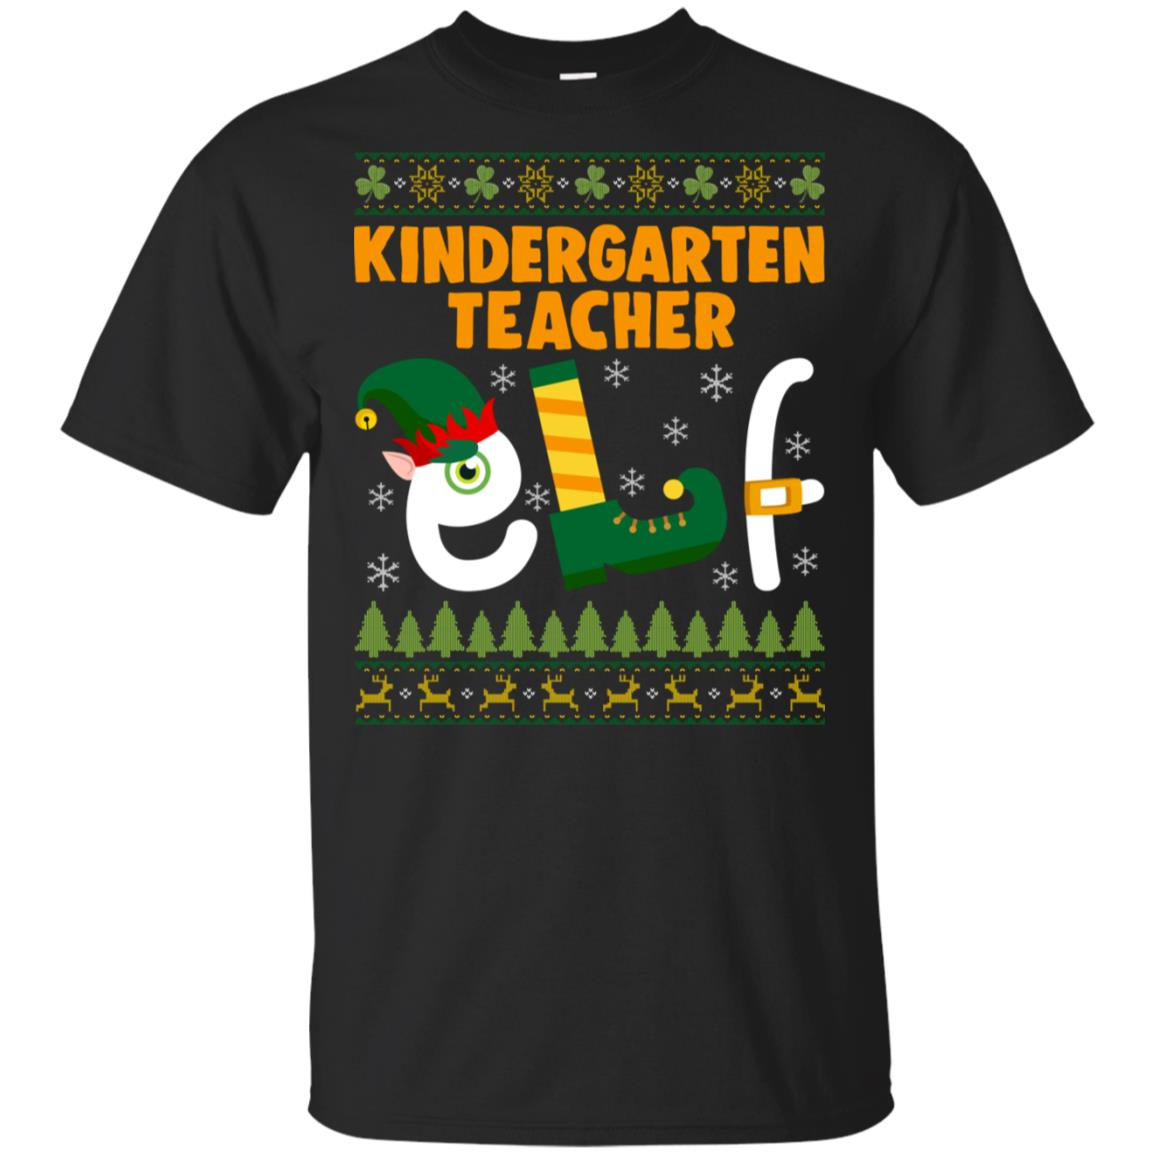 Kindergarten Teacher Elf Unisex Short Sleeve